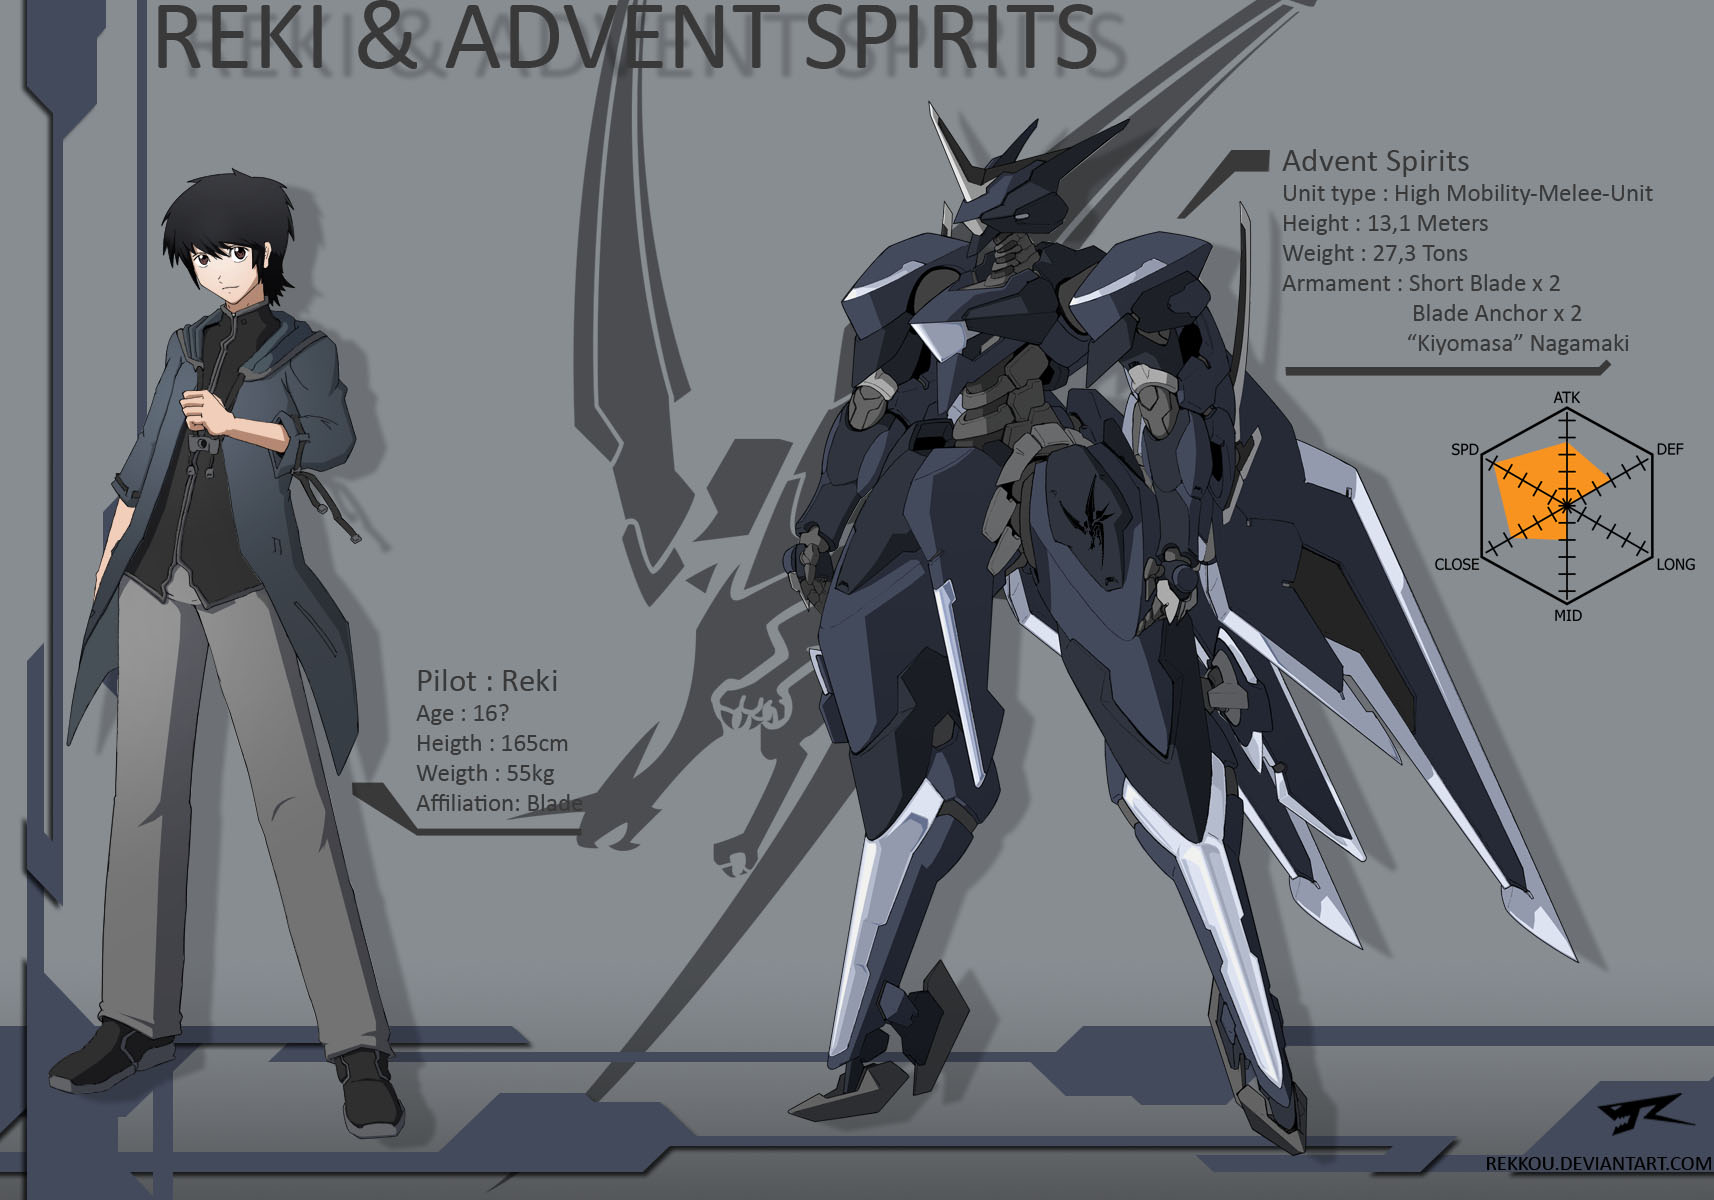 Reki and Advent Spirits by Rekkou